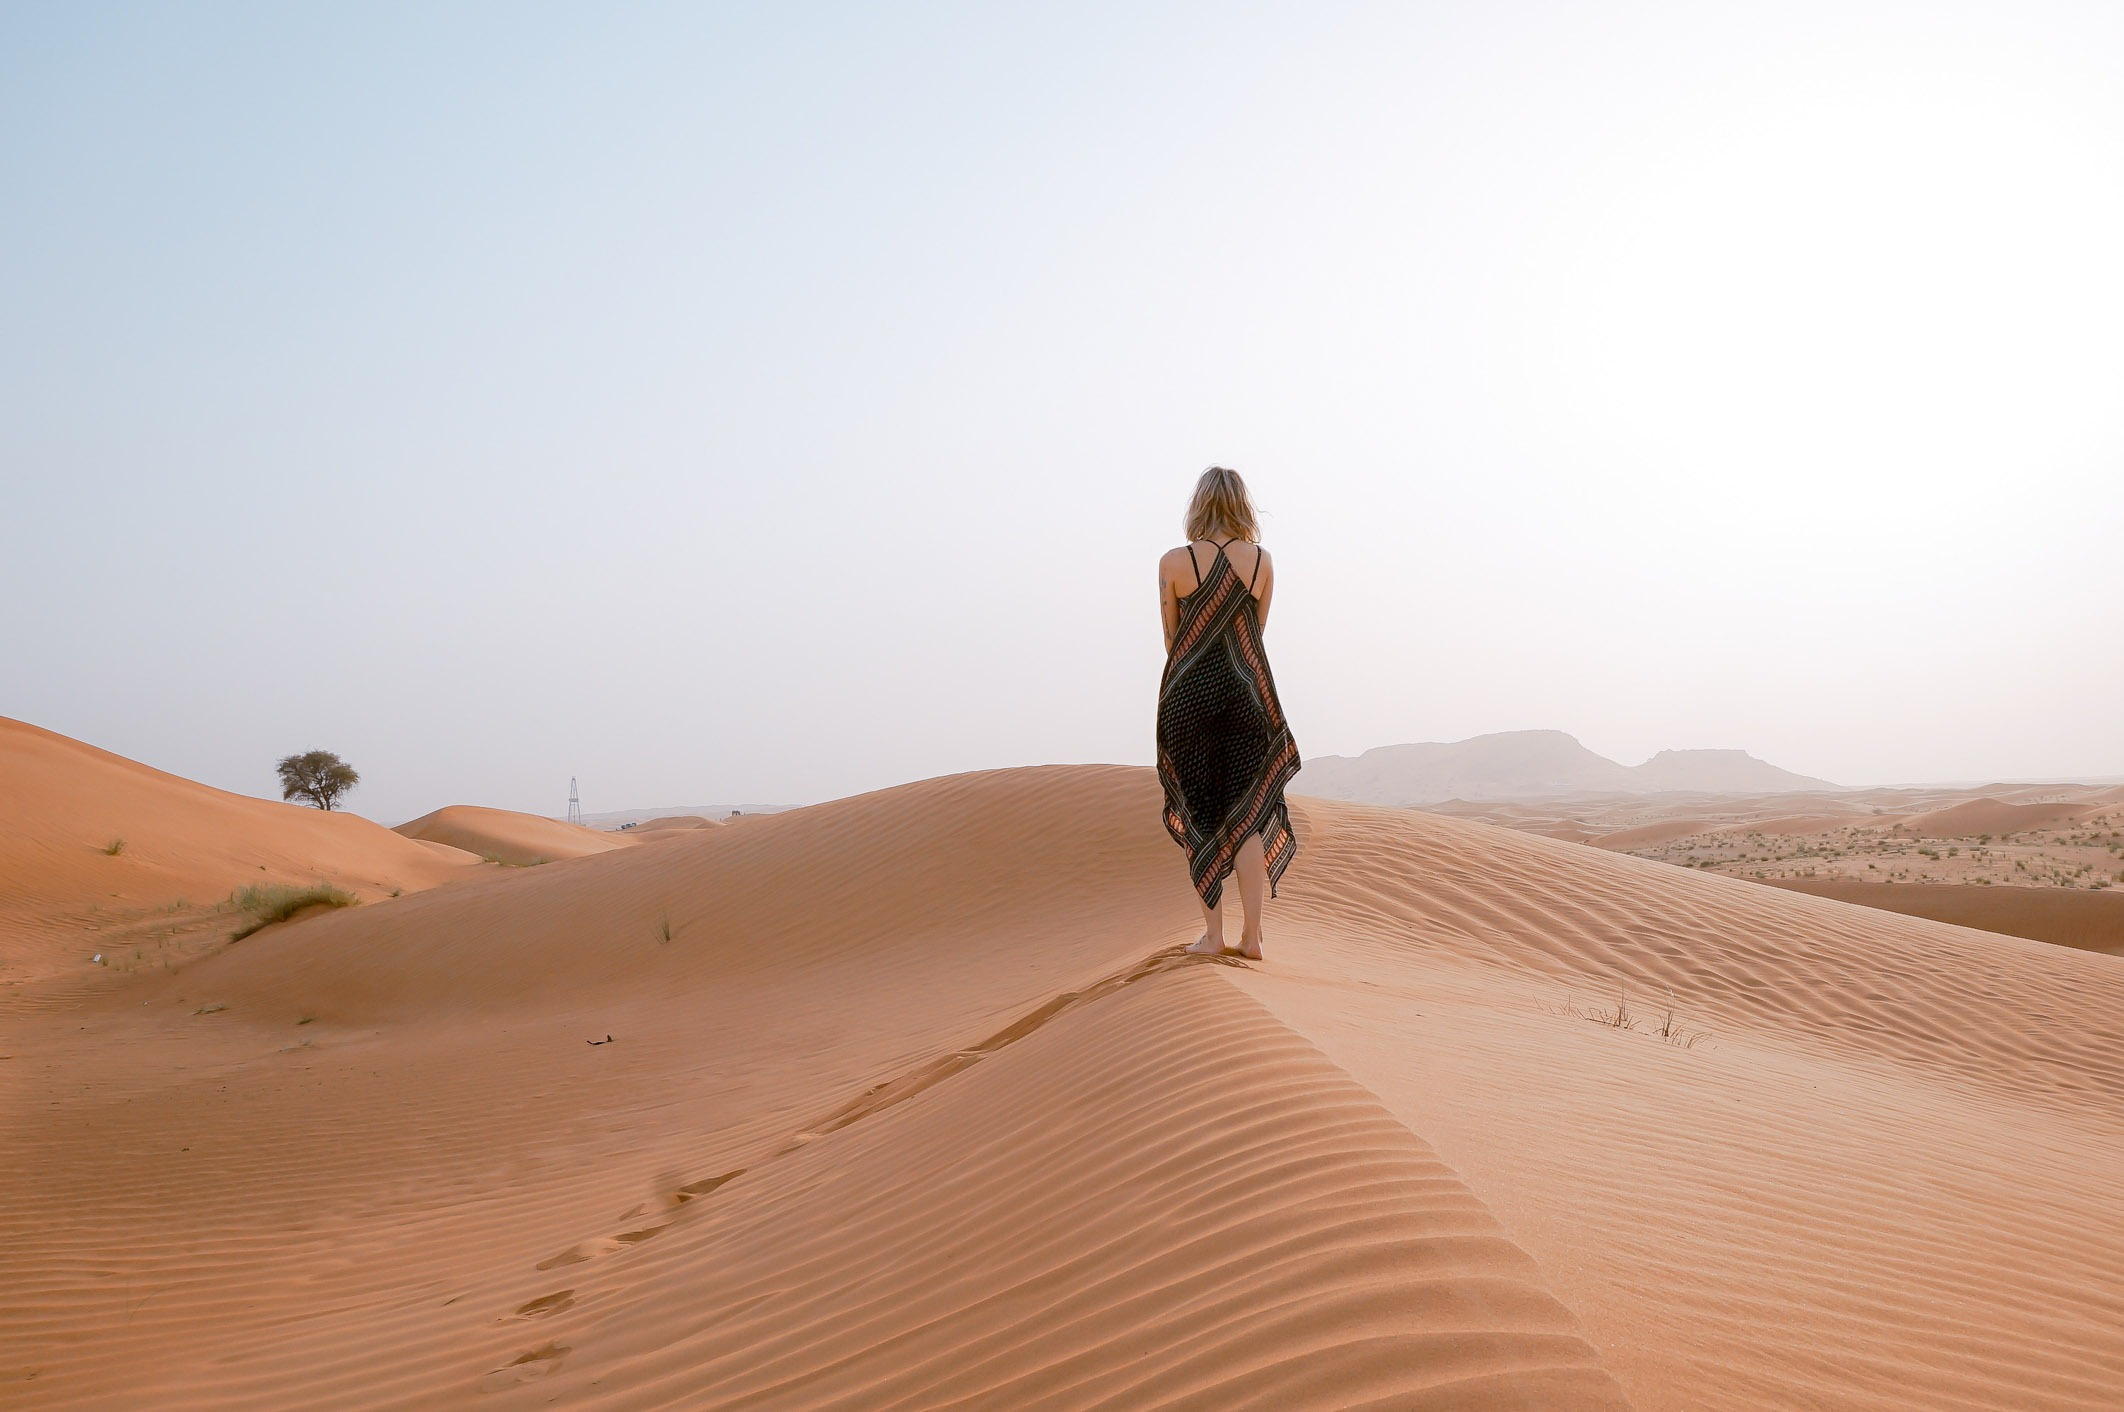 Dubai Facts - 10 Surprising Things I Bet You Didn't Know About Dubai